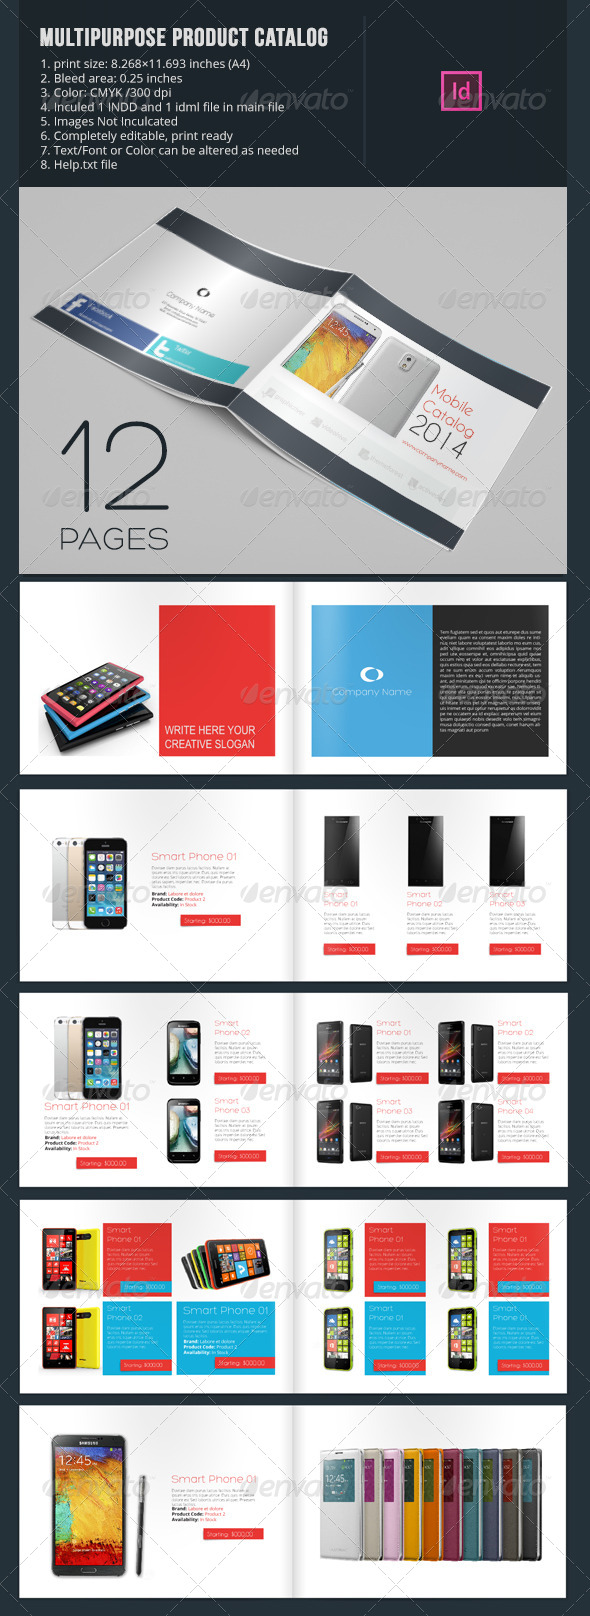 GraphicRiver Multipurpose Product Catalog 12 Pages 6684291